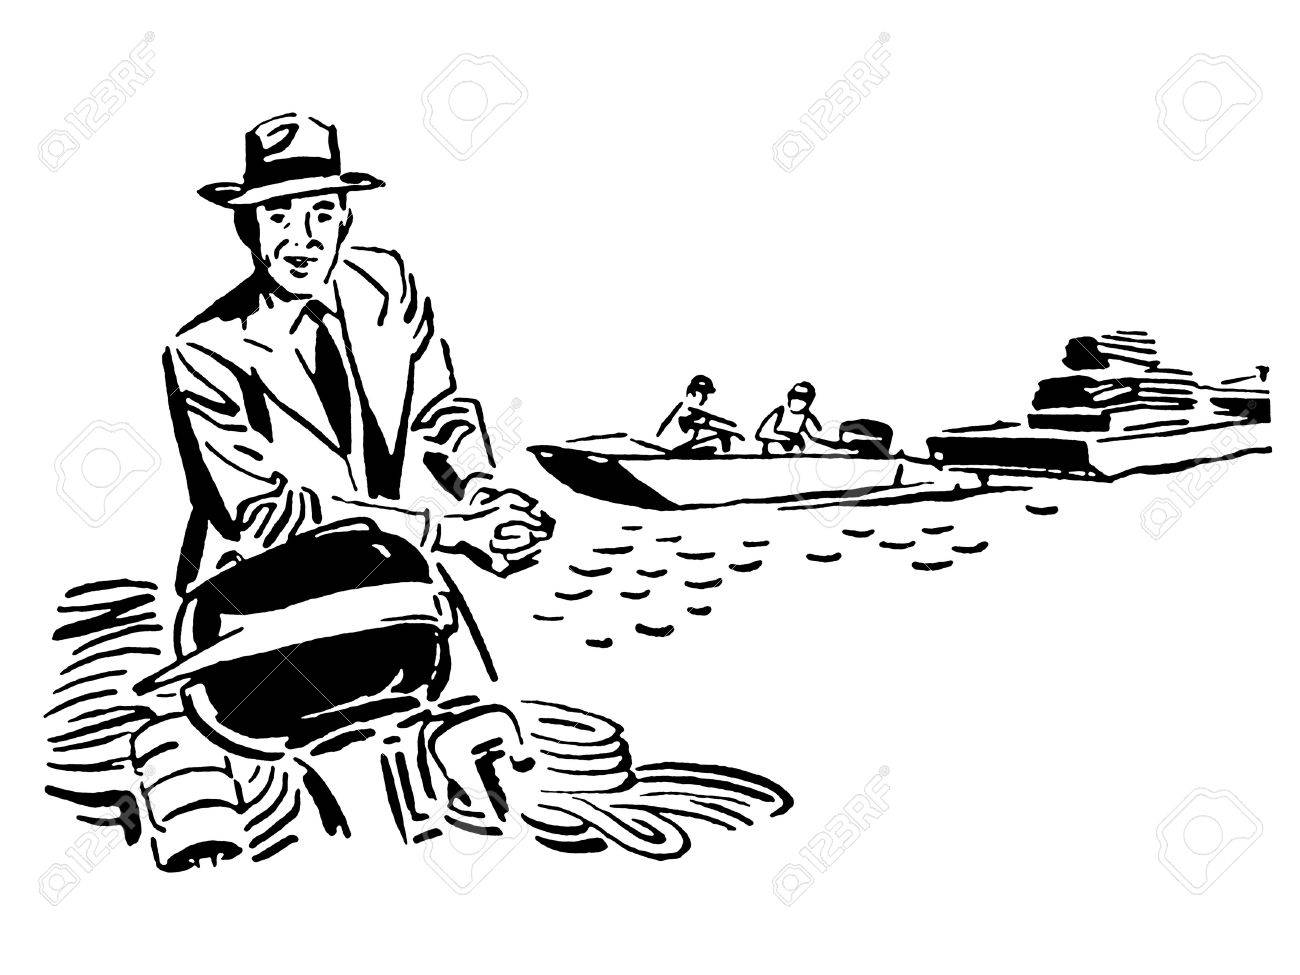 A black and white version of a vintage illustration Stock Photo - 14917910